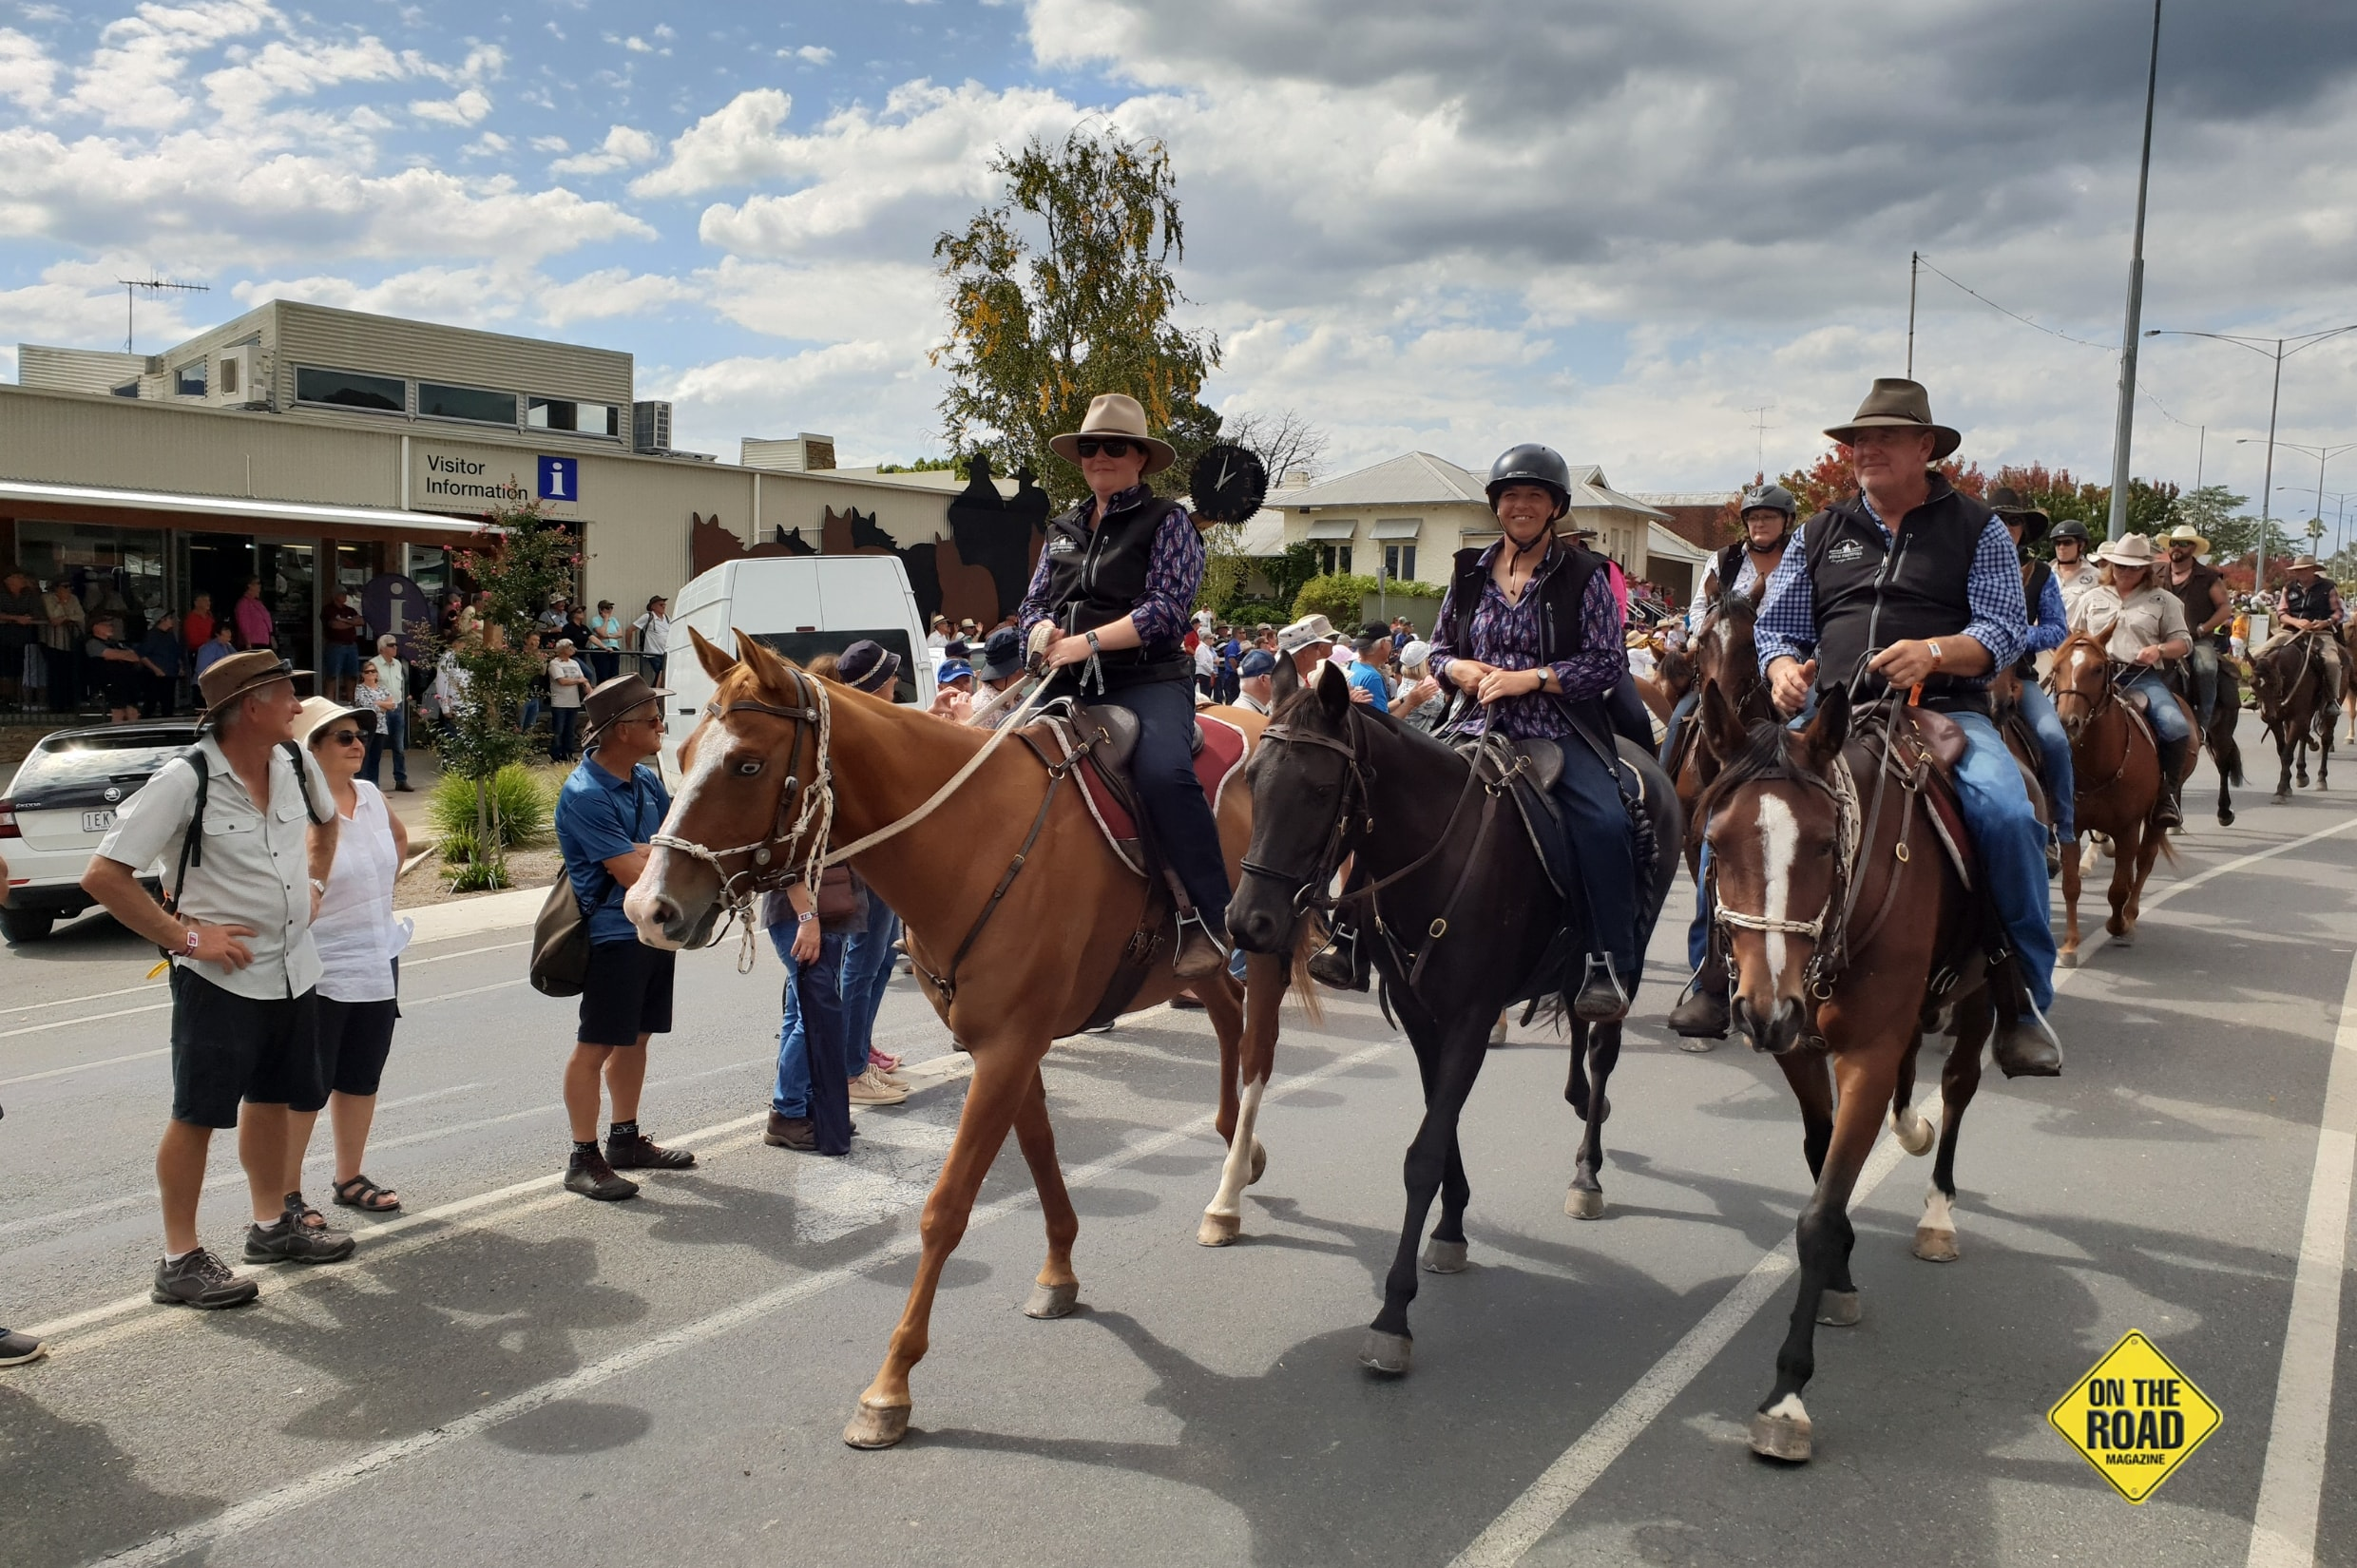 The Man From Snowy River Street Parade